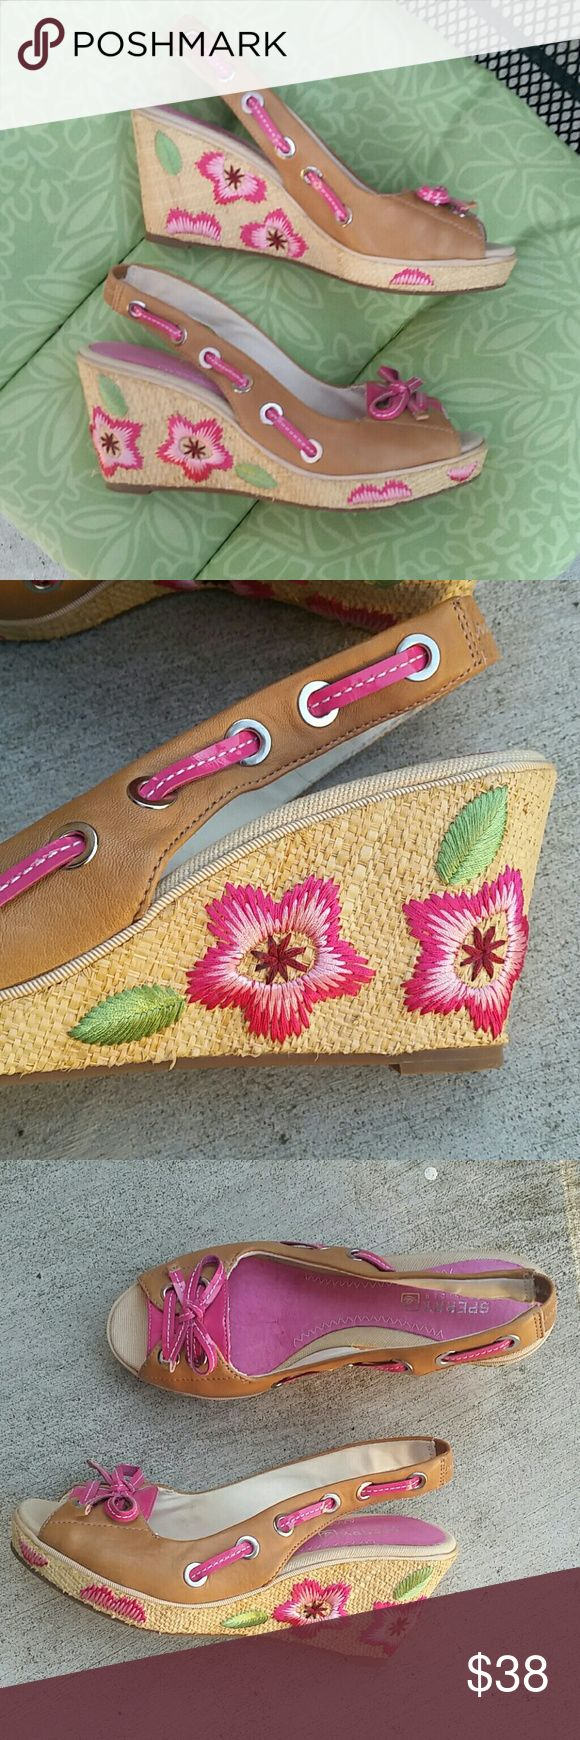 SPERRY EMBROIDERED WEDGES WORN ONCE! EXCELLENT CONDITION. I love these but my feet went up 1/2 a size during pregnancy. Slingback wedges, bow detail, flower embroidery. Size 6.5 no trades. Auto Discount on 2 or more items. Bundle and save with 1 shipping charge. If you like these wedges, check out the Sperry loafers listed! Sperry Shoes Wedges